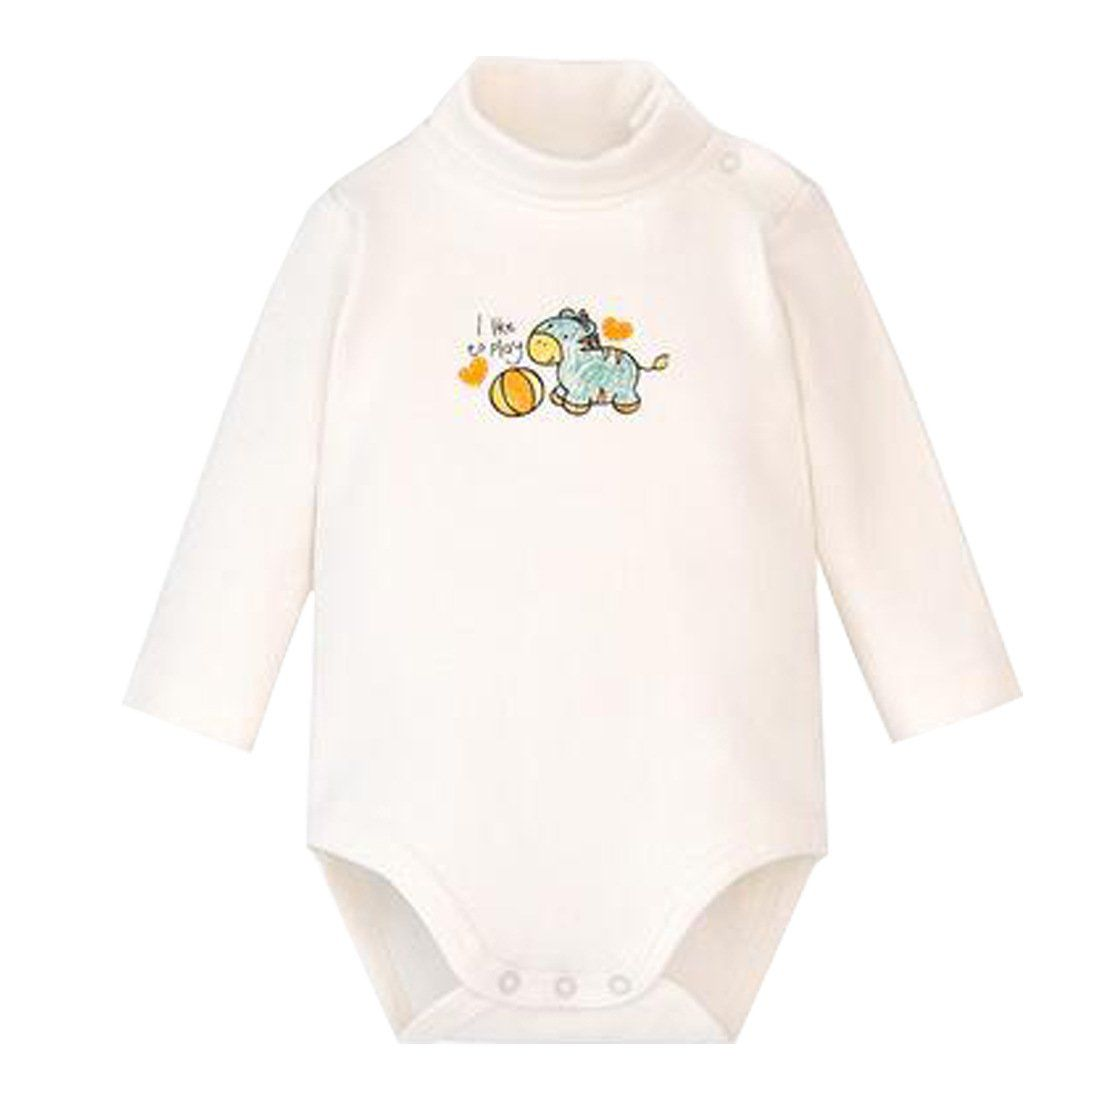 1235ef28f Infant Baby Boys Girls Long Sleeves Thermal Onesies TurtleNeck Bodysuit  Fall Winter Cloths Outfit 4Pack 1218 Months ** Visit the picture link even  more ...